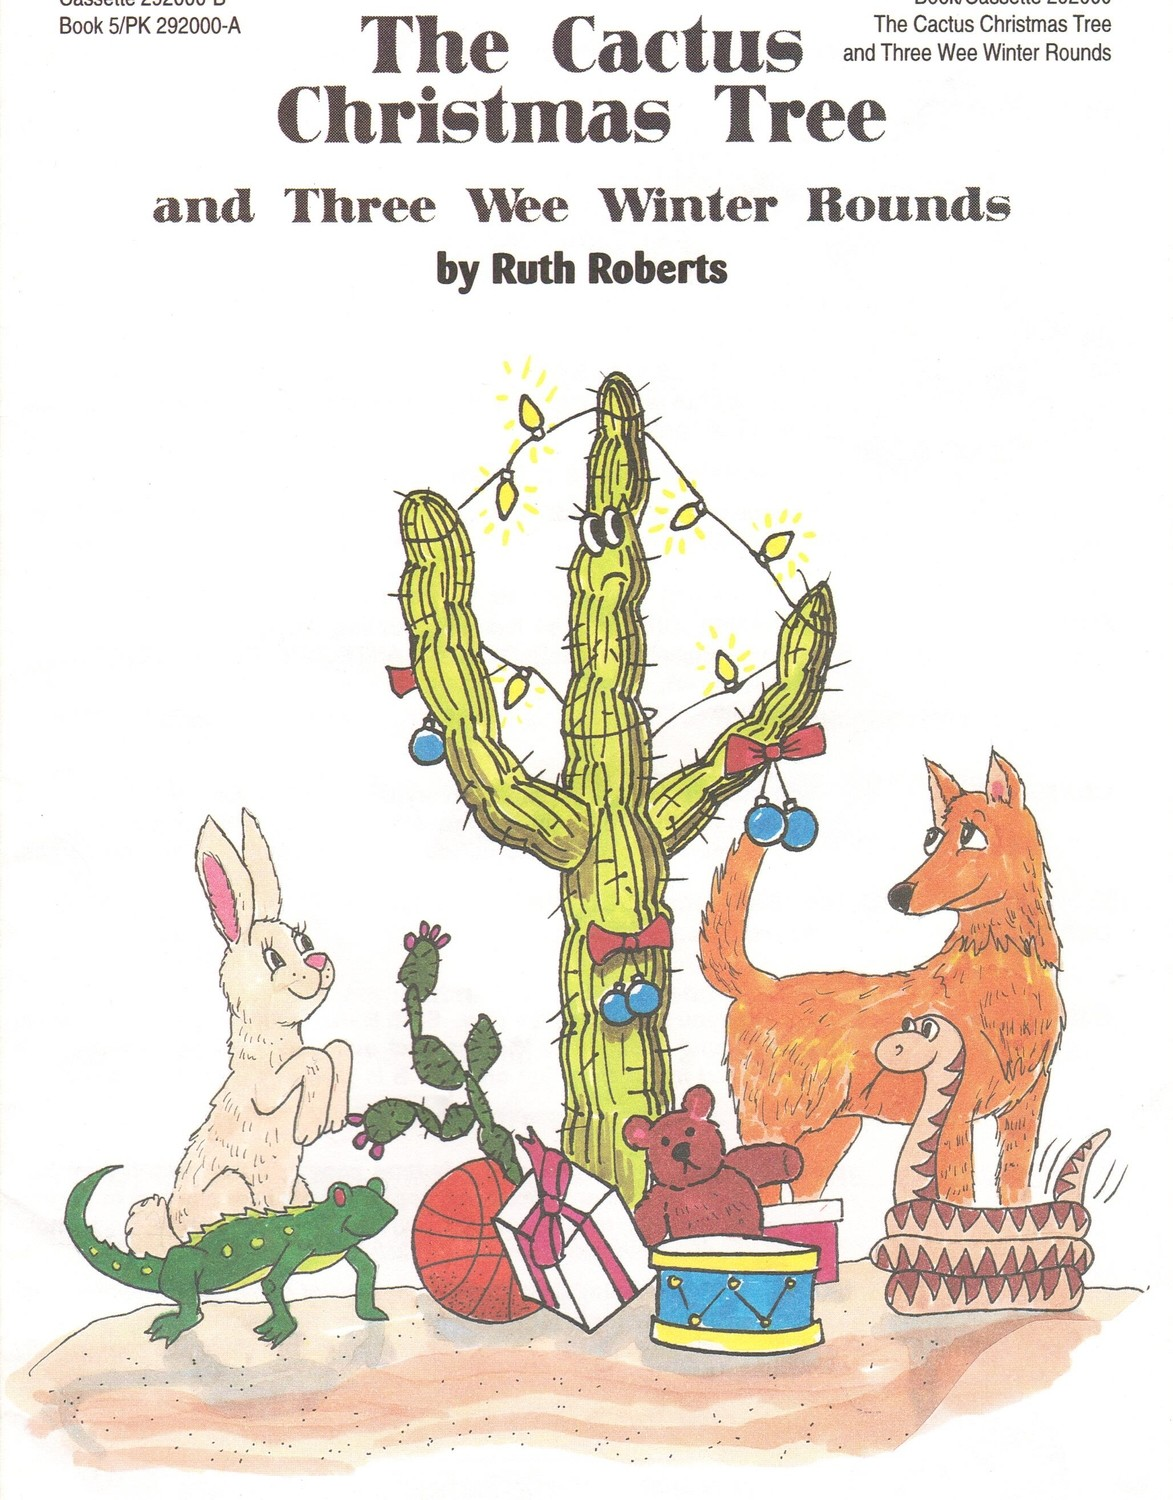 The Cactus Christmas Tree - 5 pack